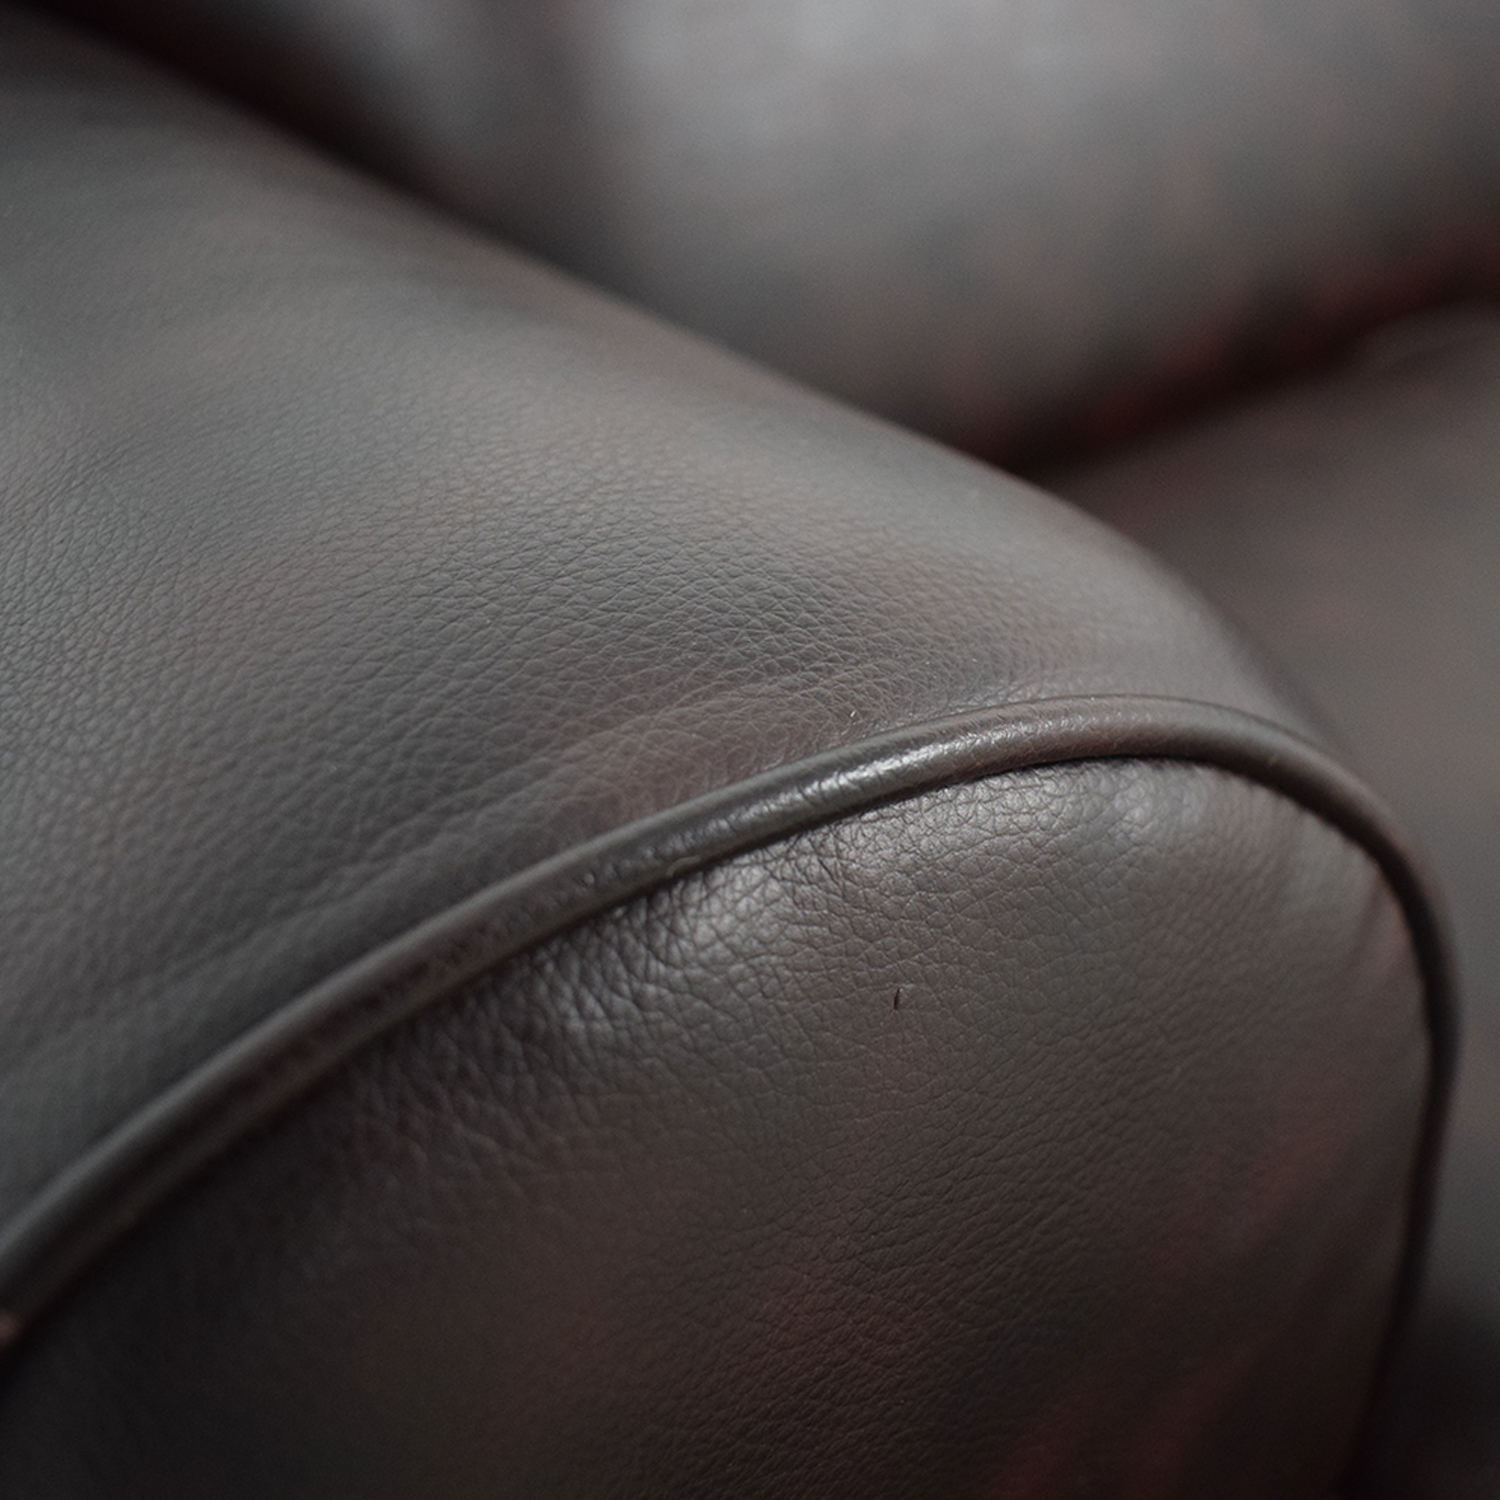 Pier 1 Imports Pier 1 Imports Brown Leather Love Seat coupon